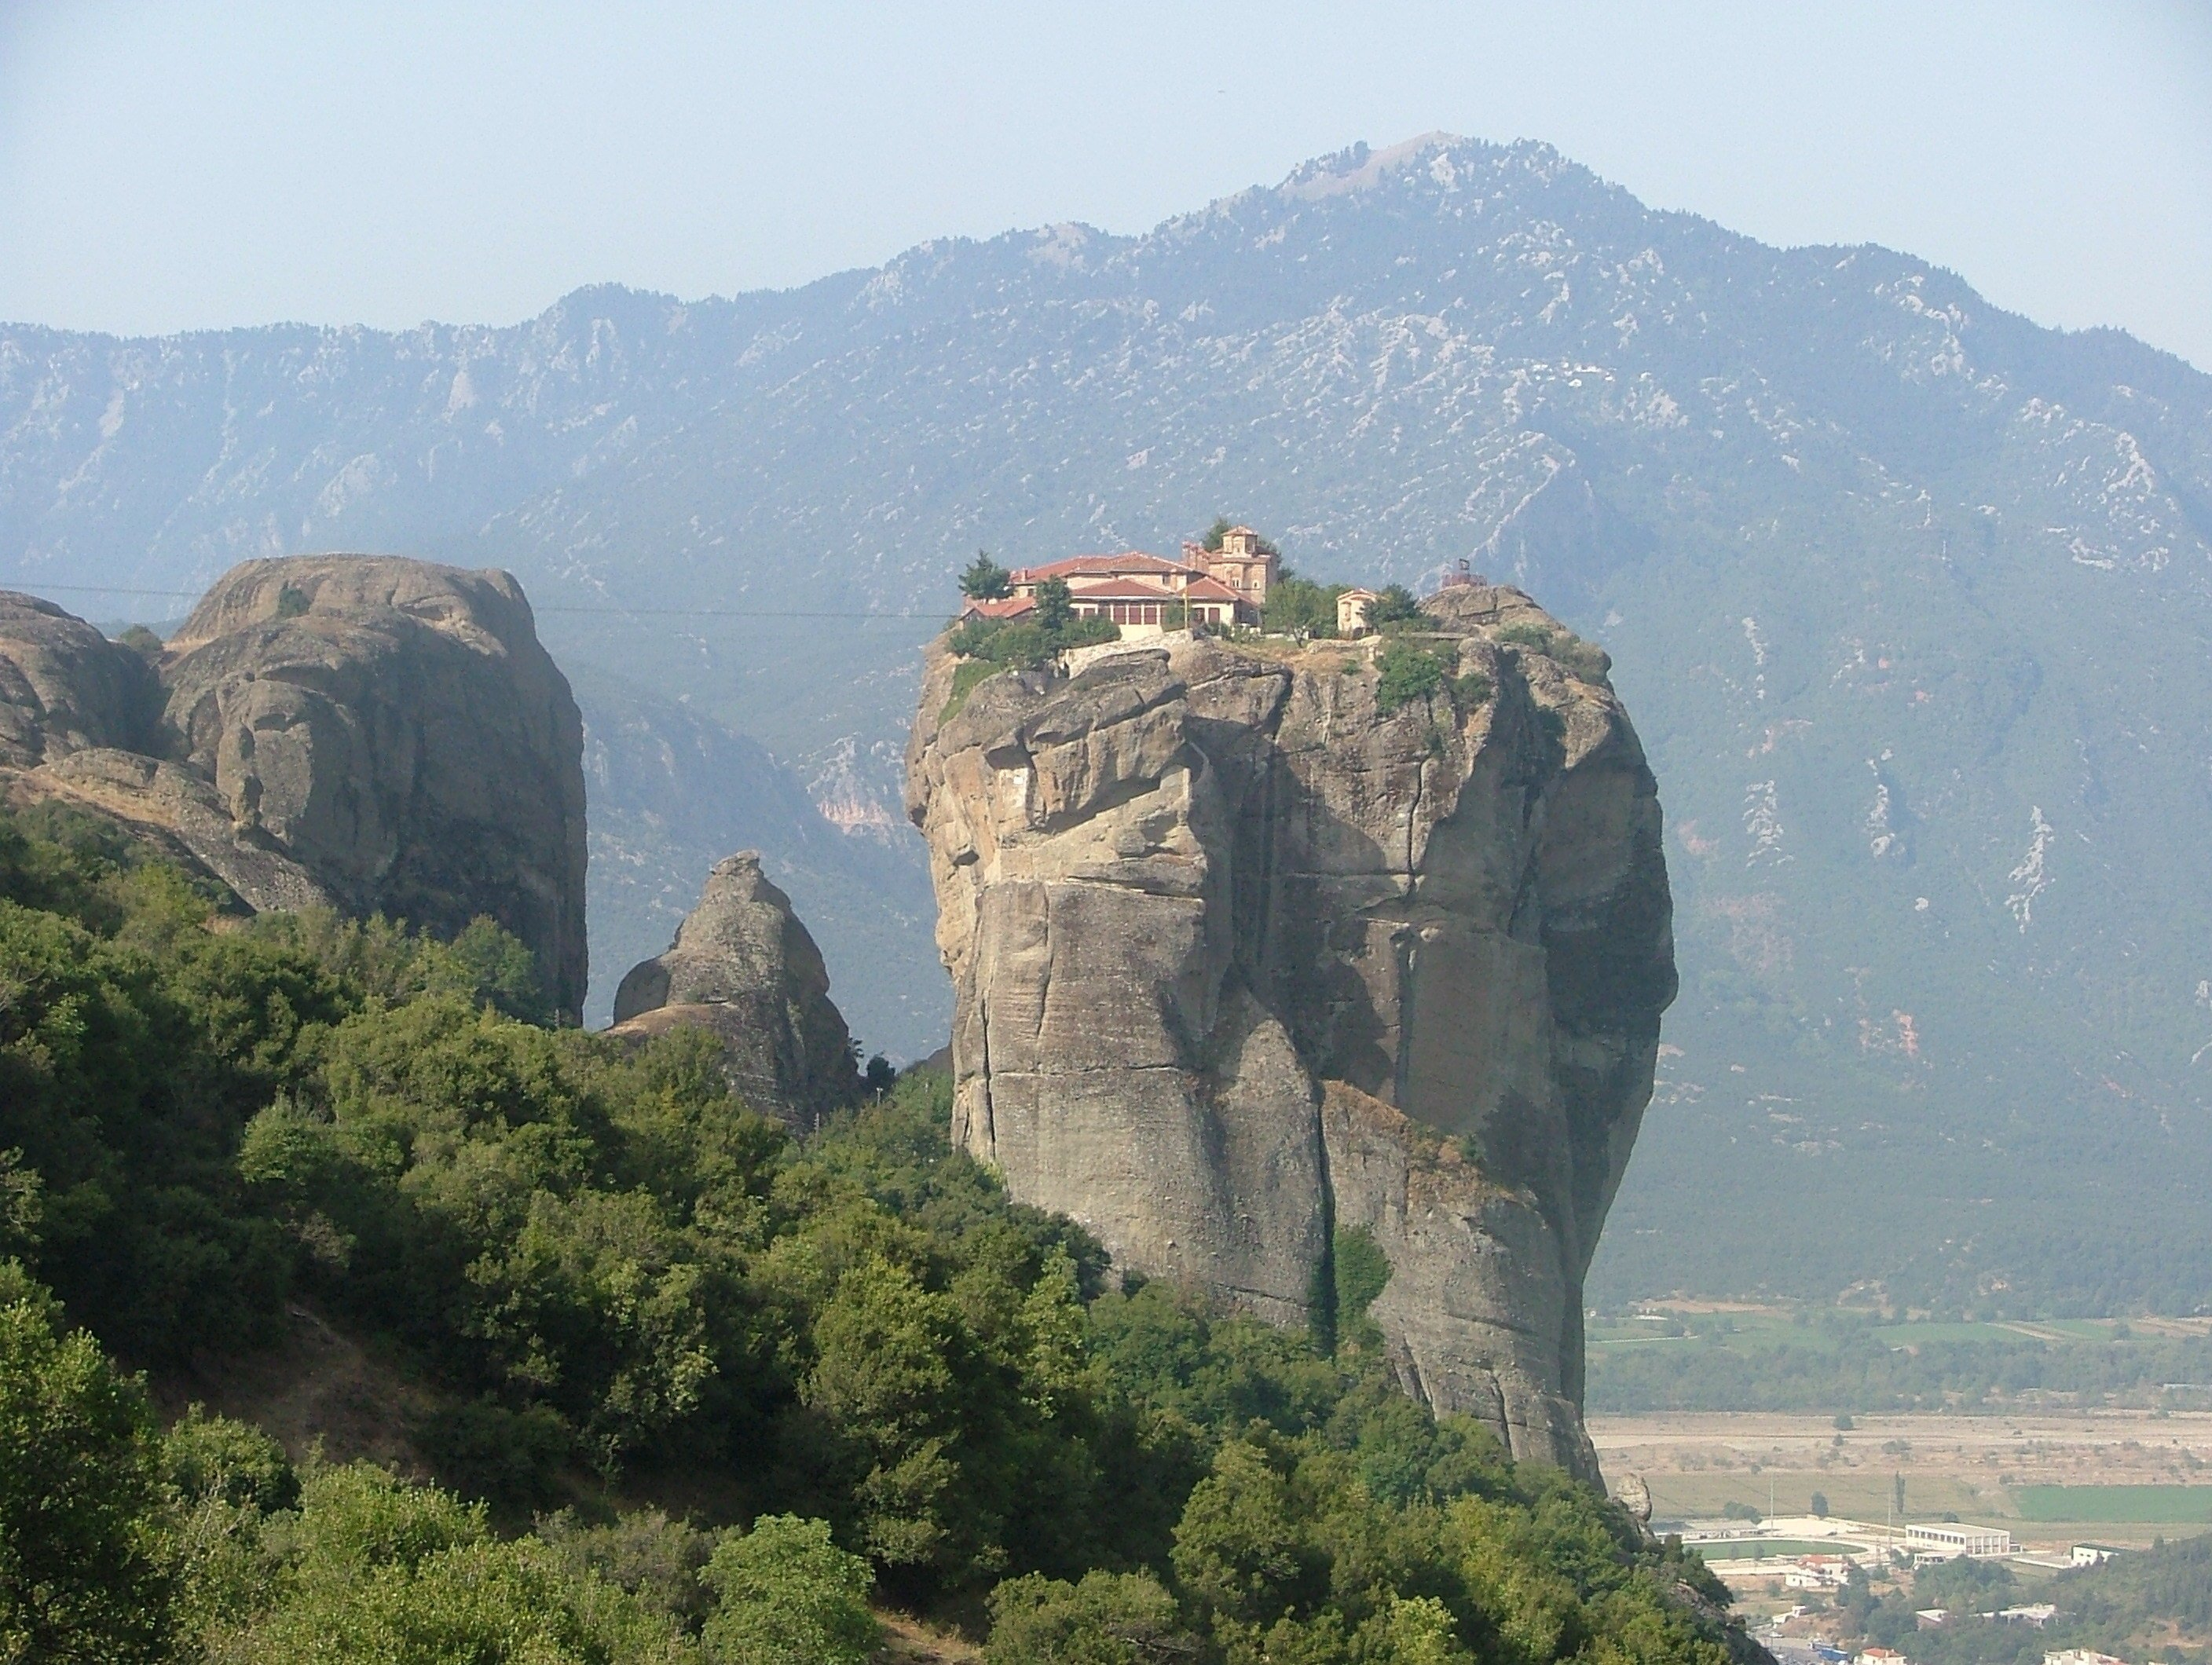 The Meteora region in Greece (For Your Eyes Only - 1981)